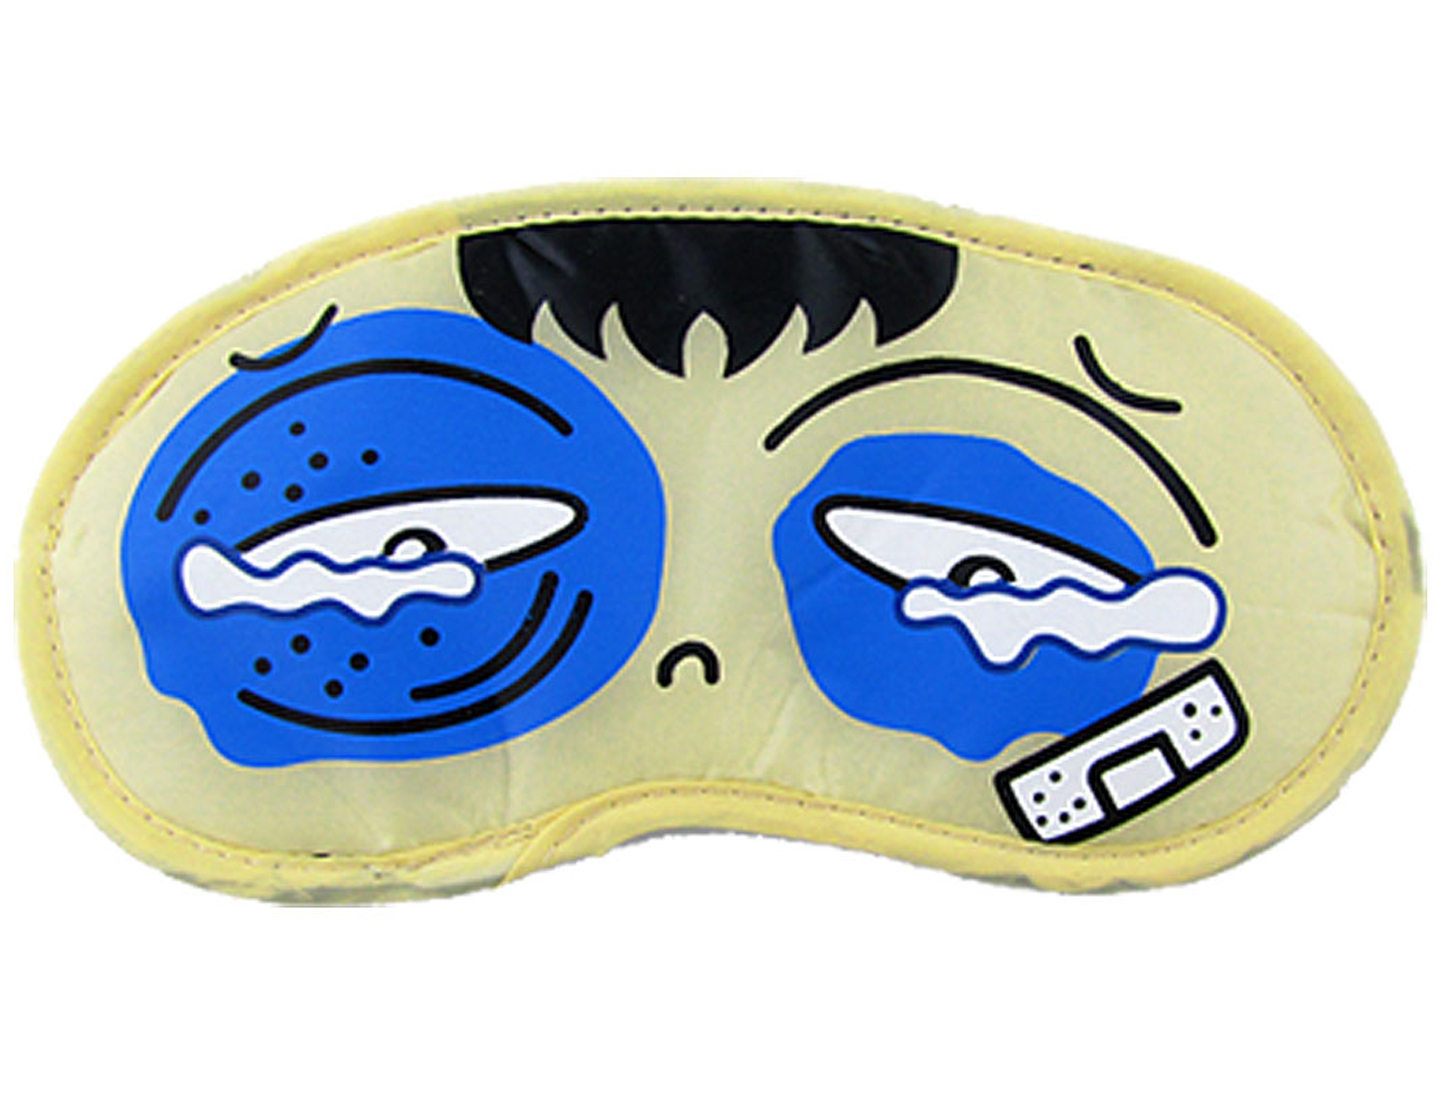 2 Pcs Heavy Hit Head Cartoon Print Soft Sleeping Eye Mask Beige